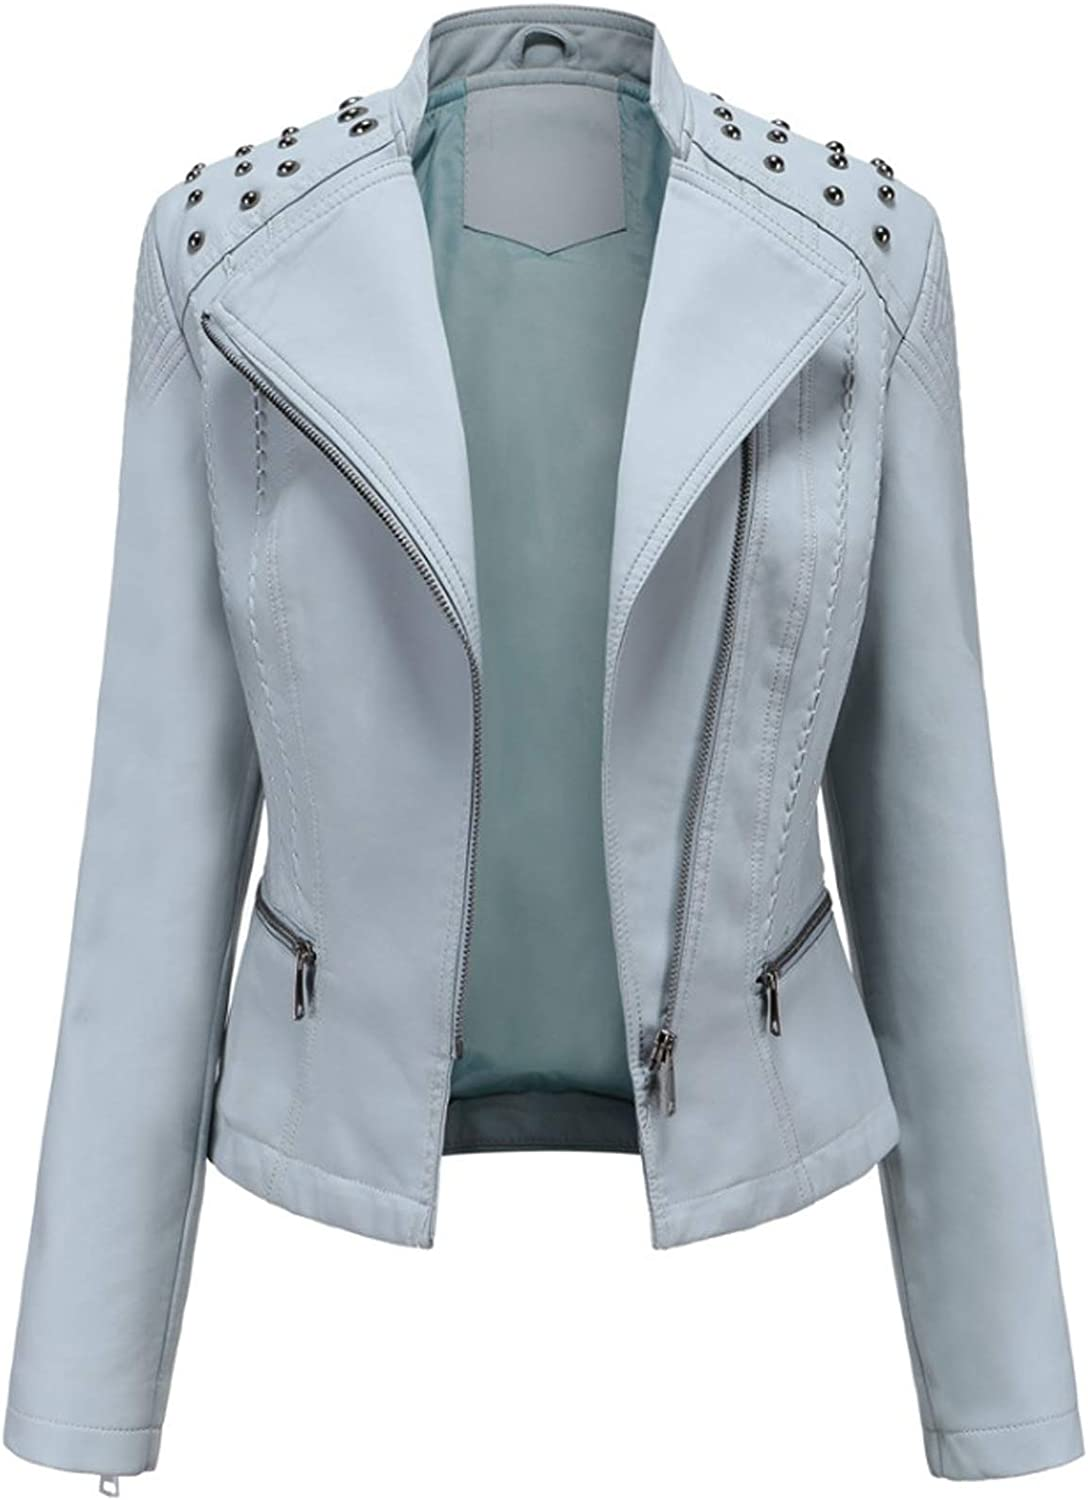 Women's Faux Leather Biker Jacket Up Zip Motorcy Studded Fashion Ranking Max 75% OFF TOP8